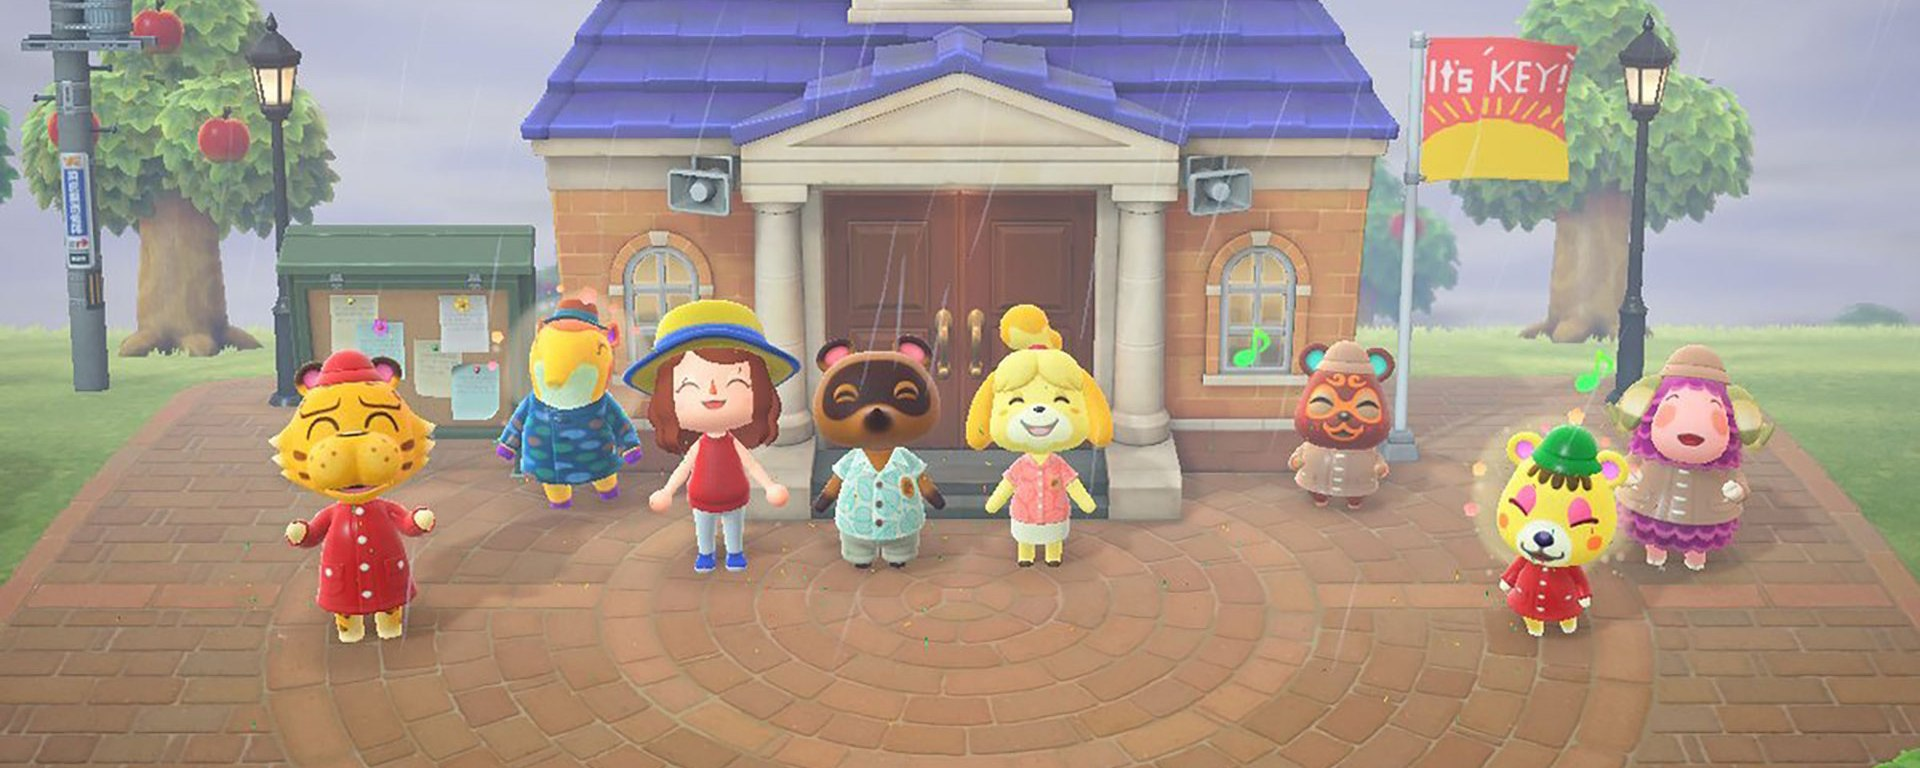 """Animal Crossing: New Horizons"" screenshot of my character posing with animal villagers for a picture."